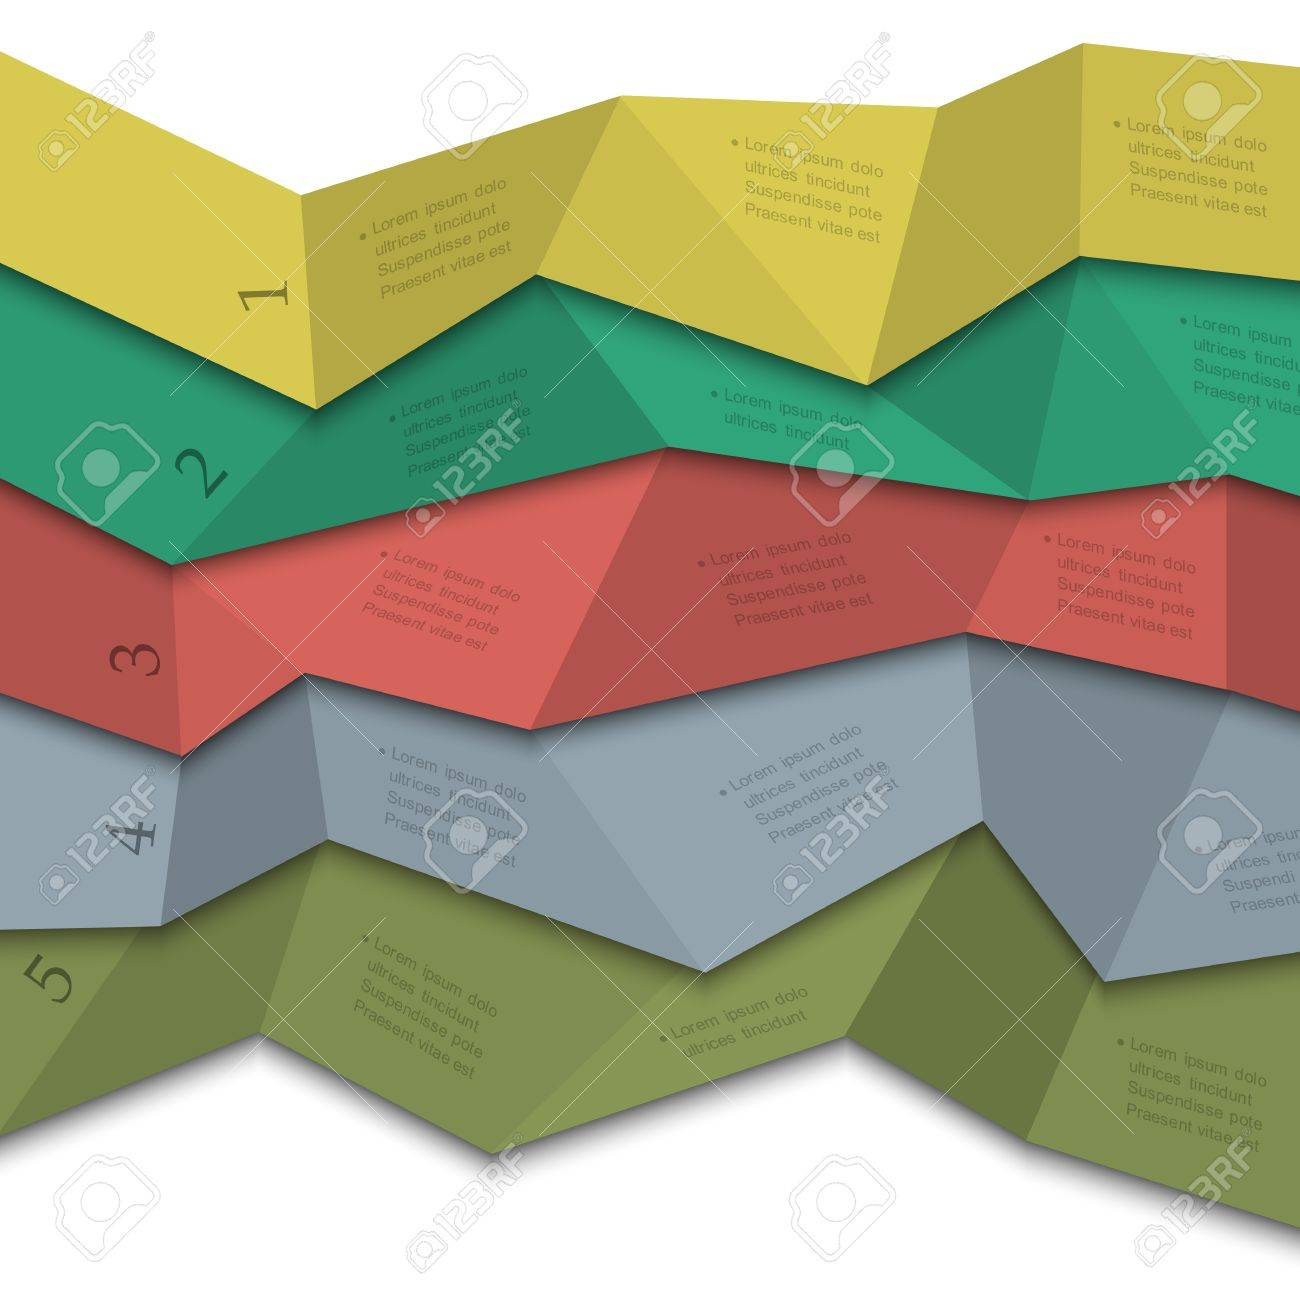 Origami style - creative design template for infographics,numbered banners,website layout Stock Vector - 17911770